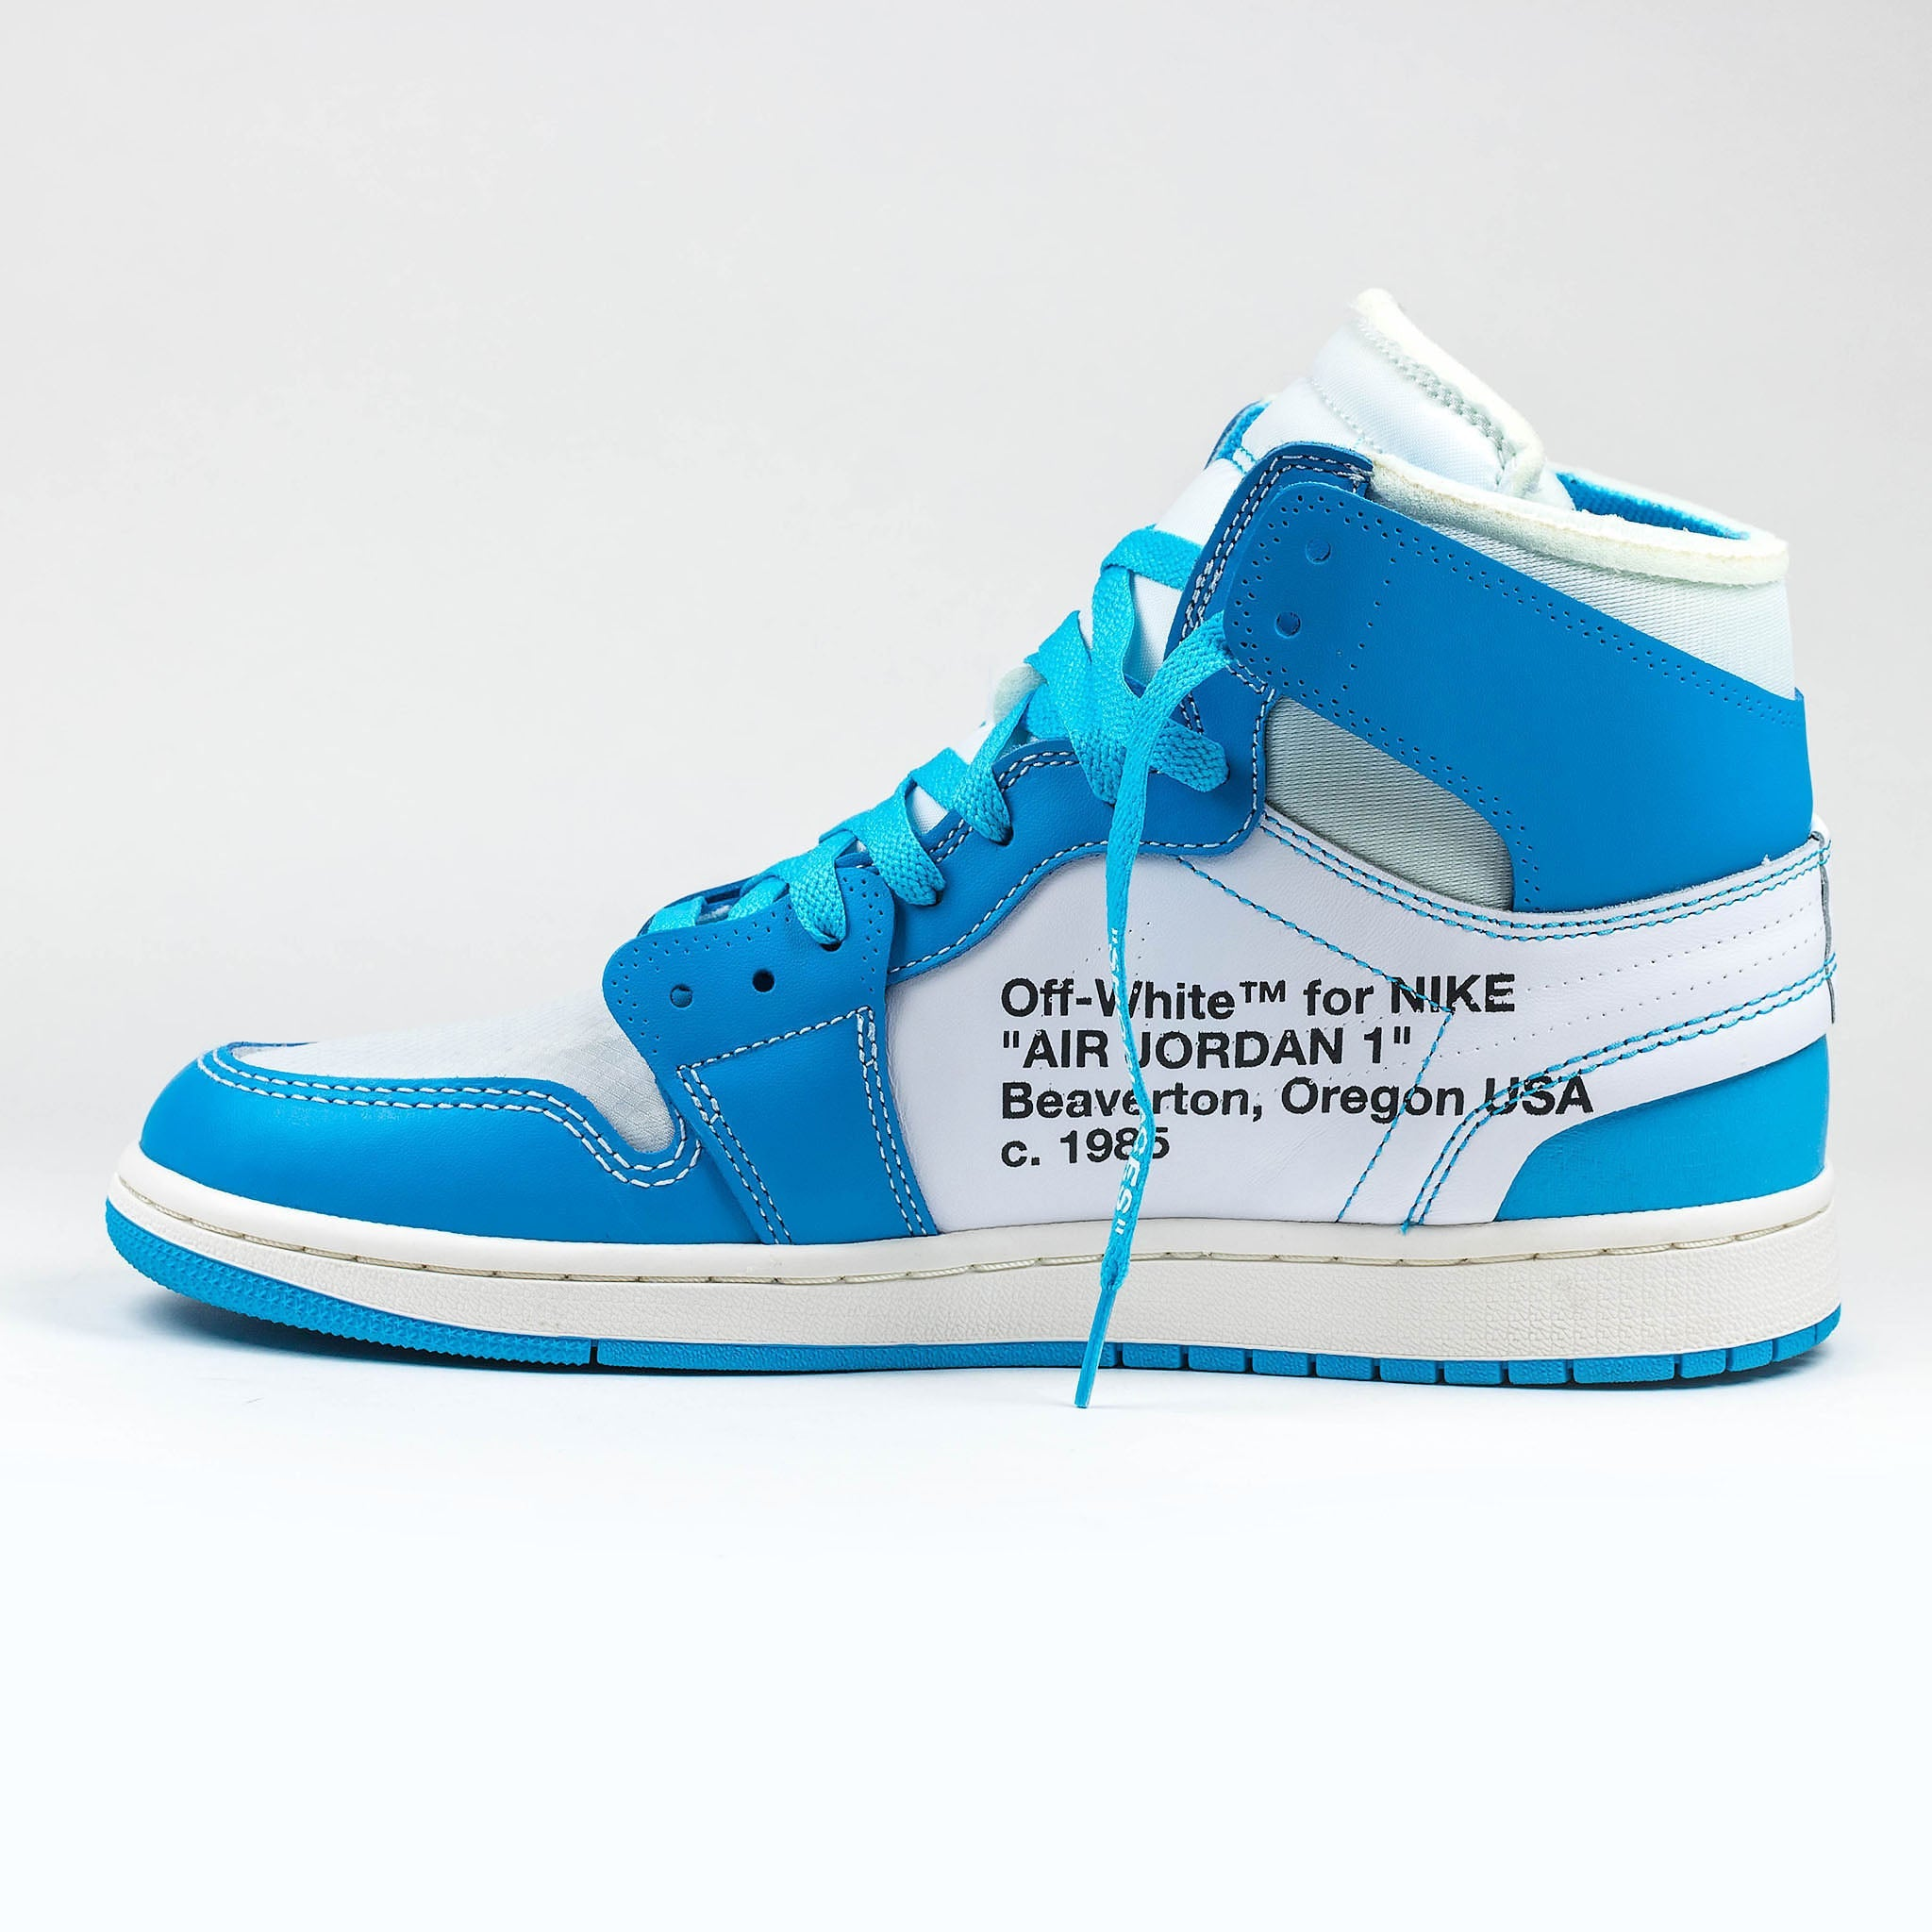 315af13a7d8 Nike x Off White Air Jordan 1 UNC University Blue – Crepslocker